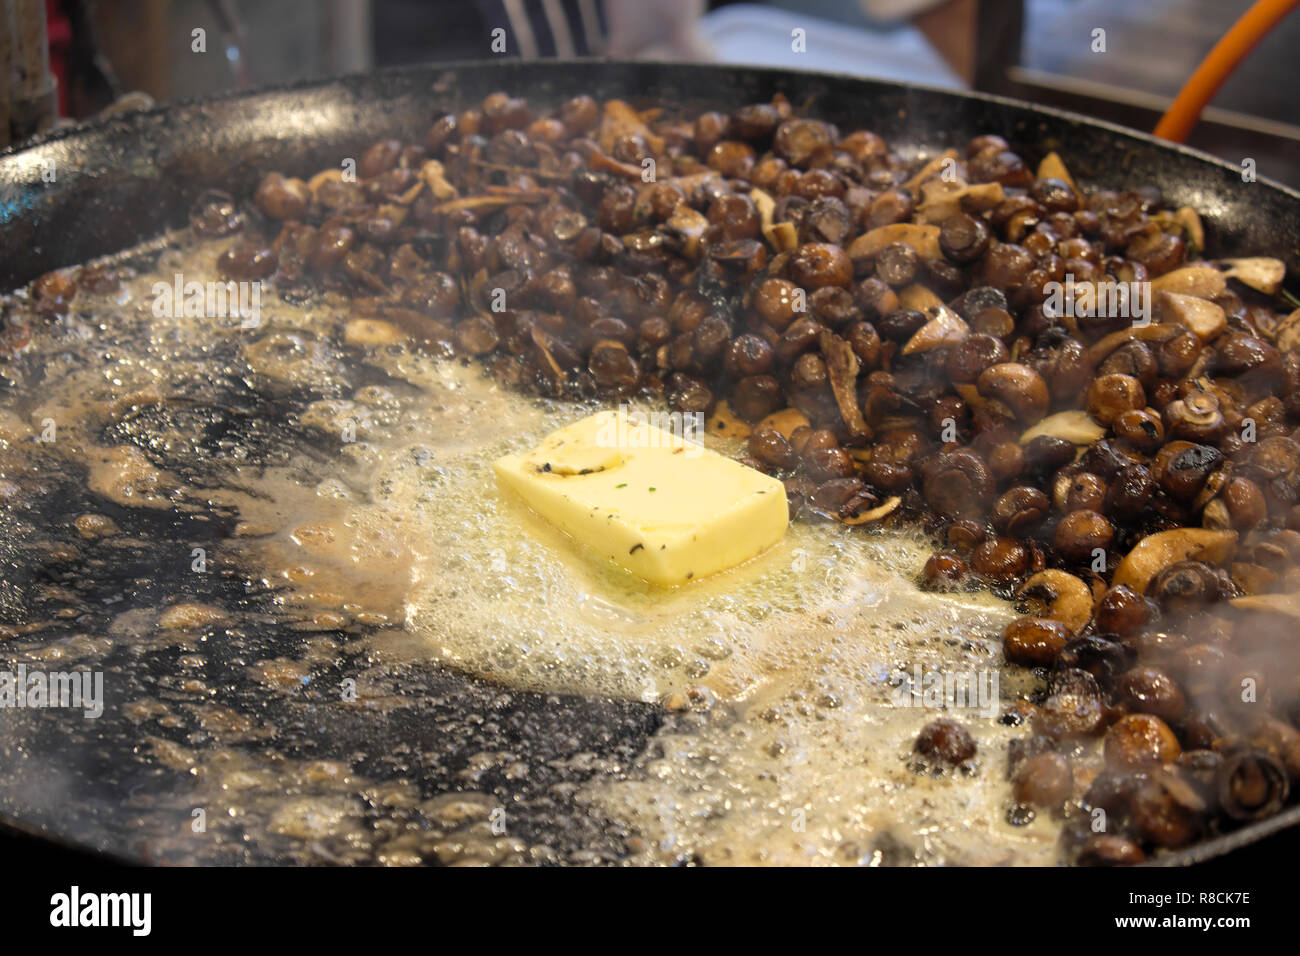 A block of butter sizzling on a cooker pan with wild mushrooms in preparation for making risotto at a Borough Market stall in London UK  KATHY DEWITT Stock Photo